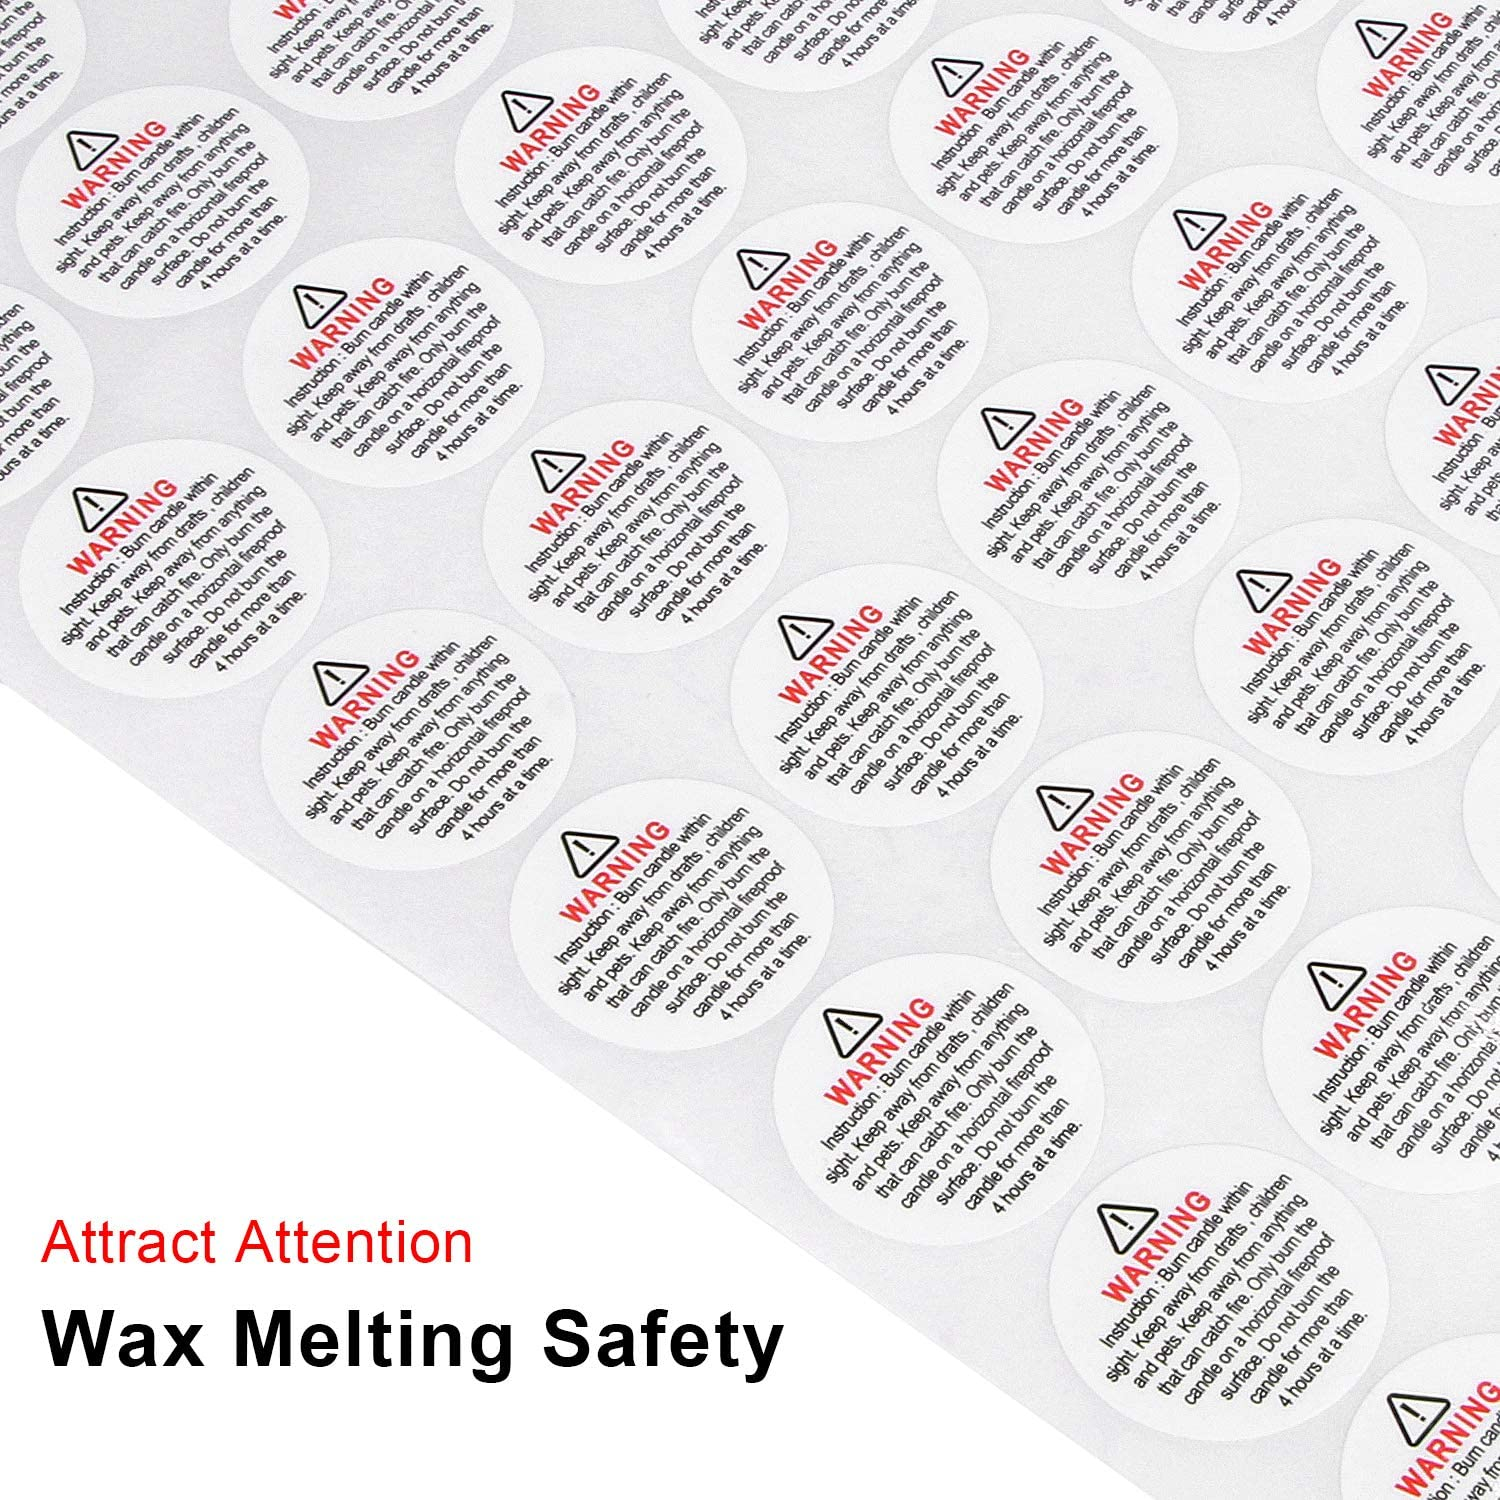 200 Pieces Candle Warning Labels 1.2 Inch Wax Melting Safety Stickers for Candle Making